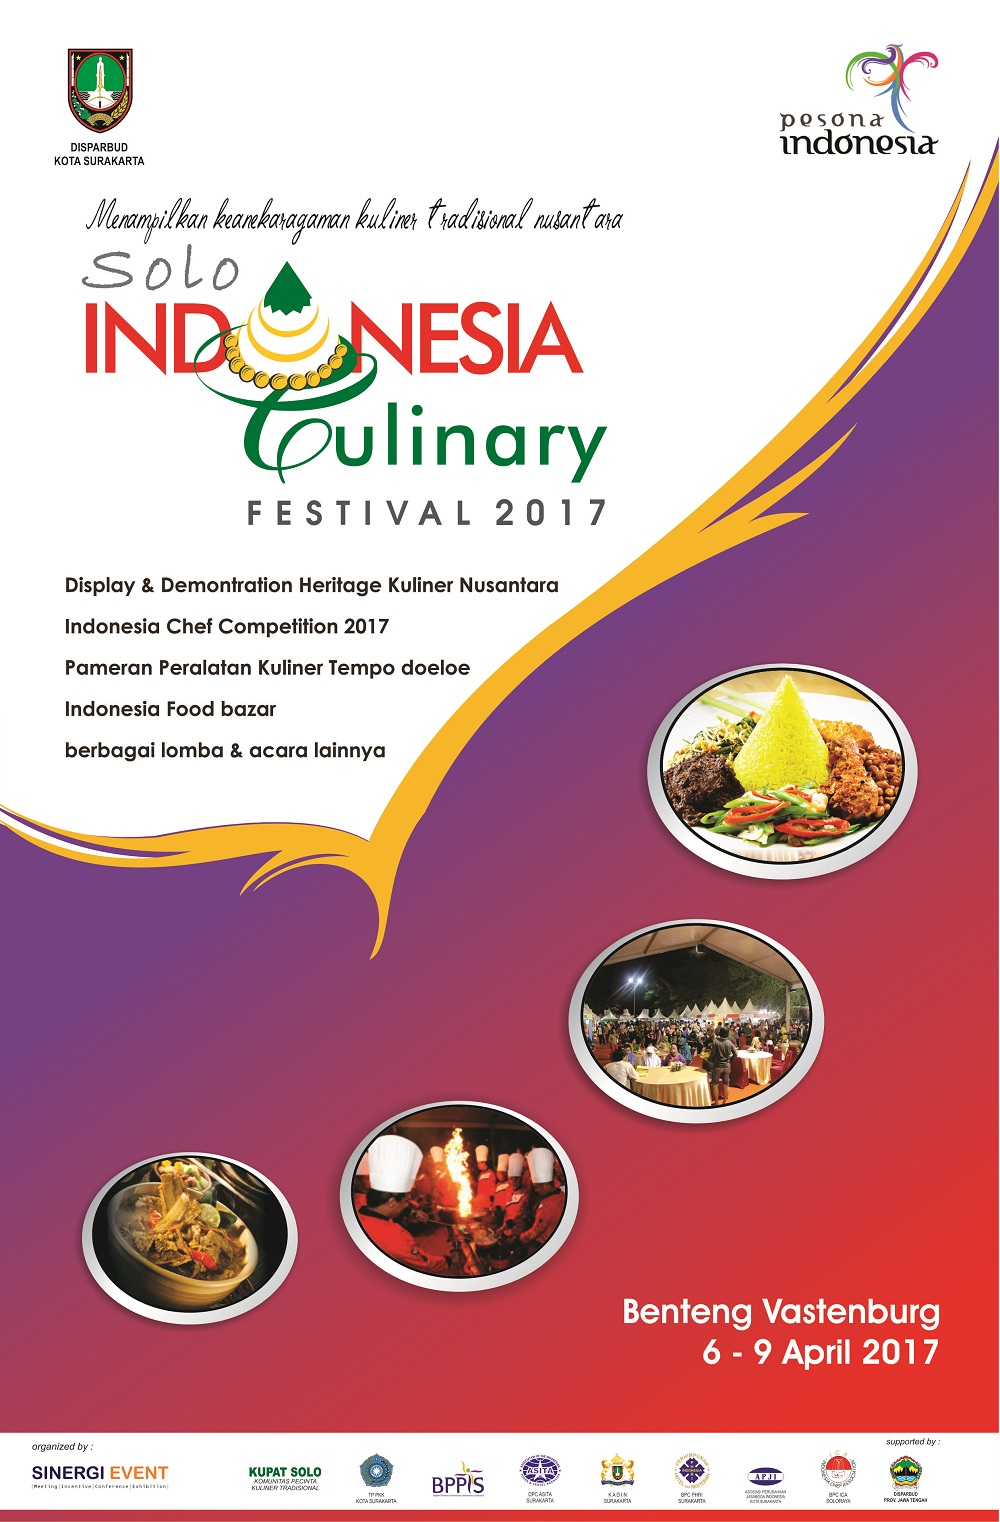 Solo Indonesia Culinary Festival - Halaman Benteng Vastenburg, 6 - 9 April 2017